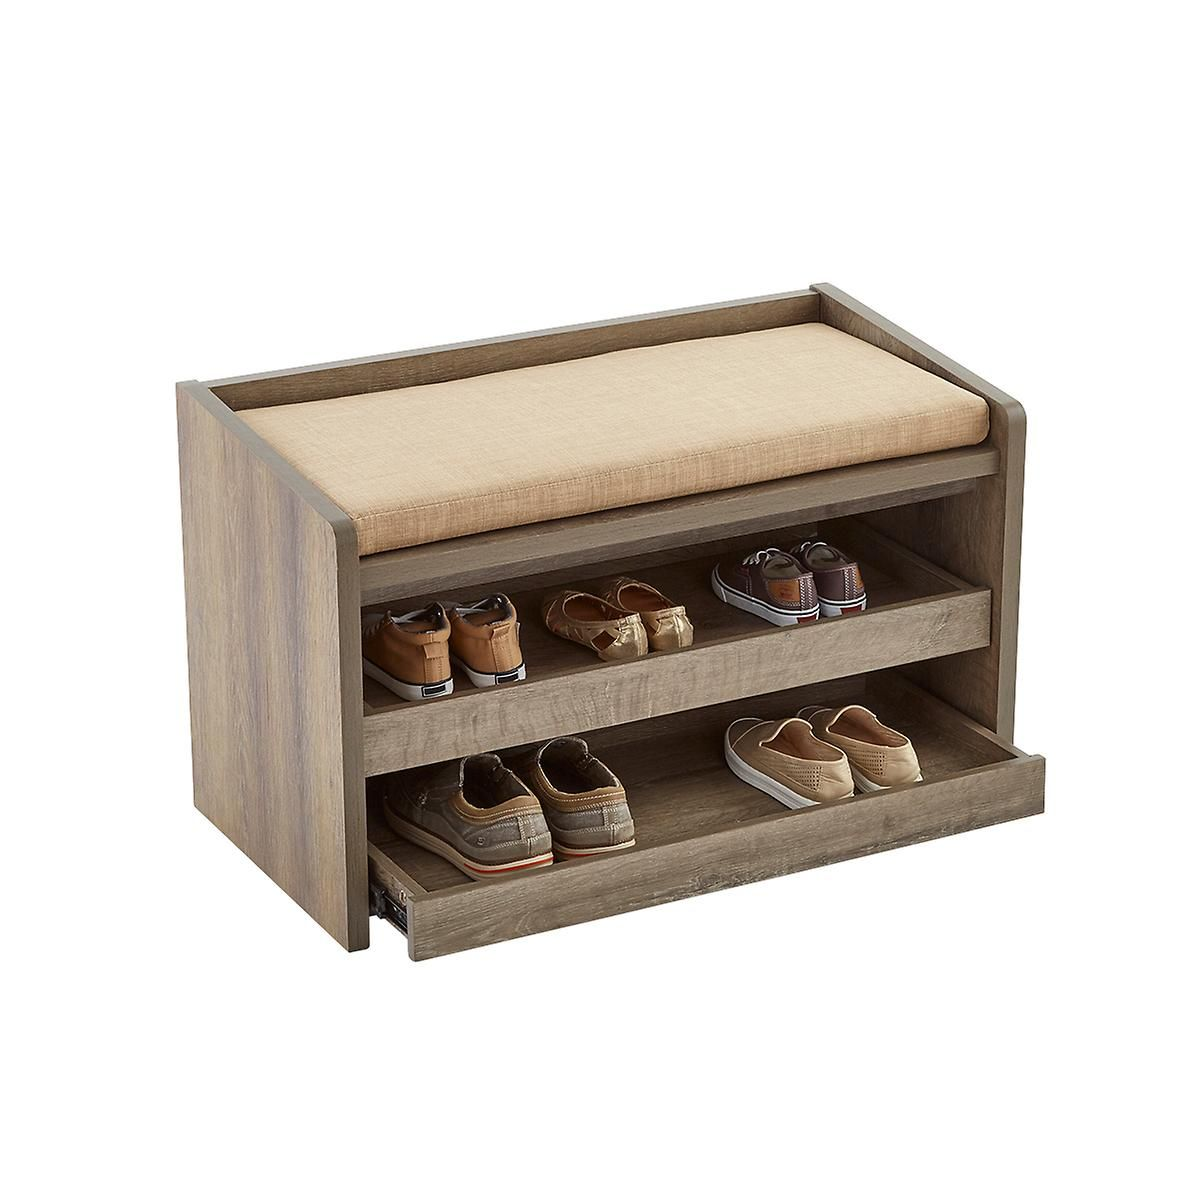 Rustic Driftwood Mercer Entryway Storage Bench Home